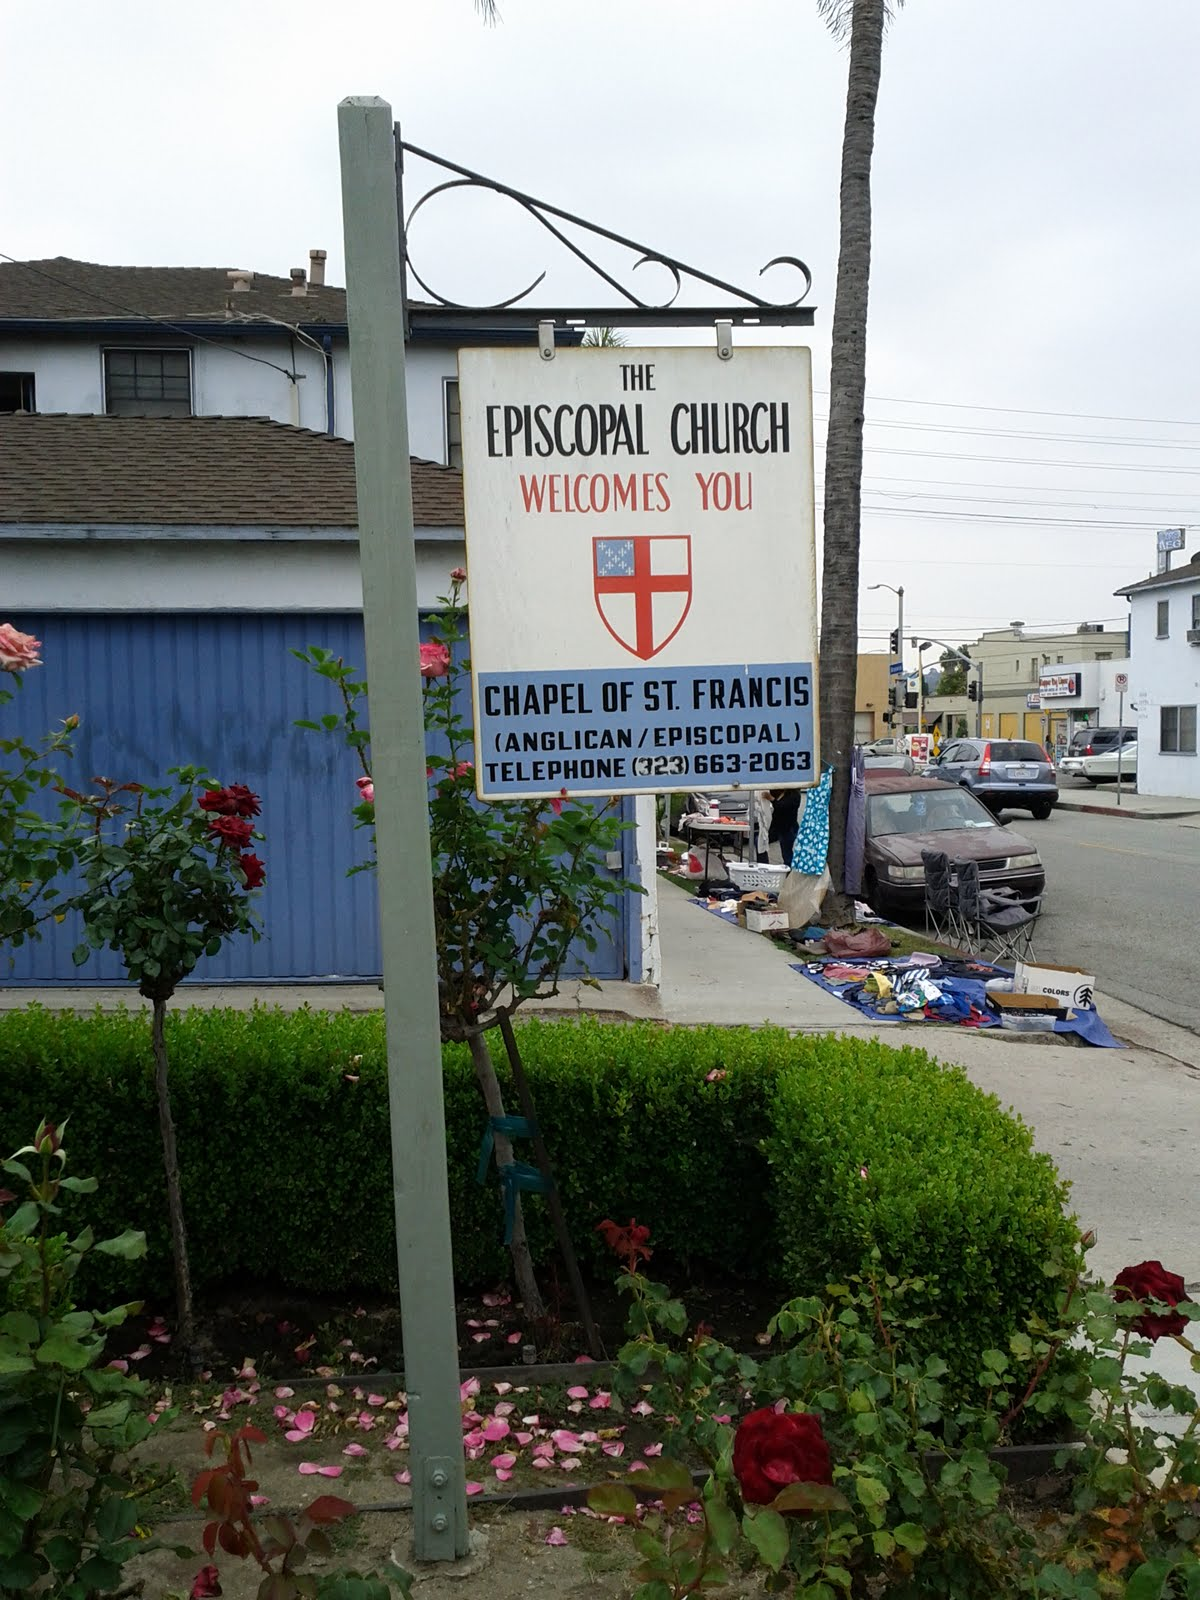 episcopal church welcomes signs wandering wondering chapel congregations visitation visiting seeing case today these